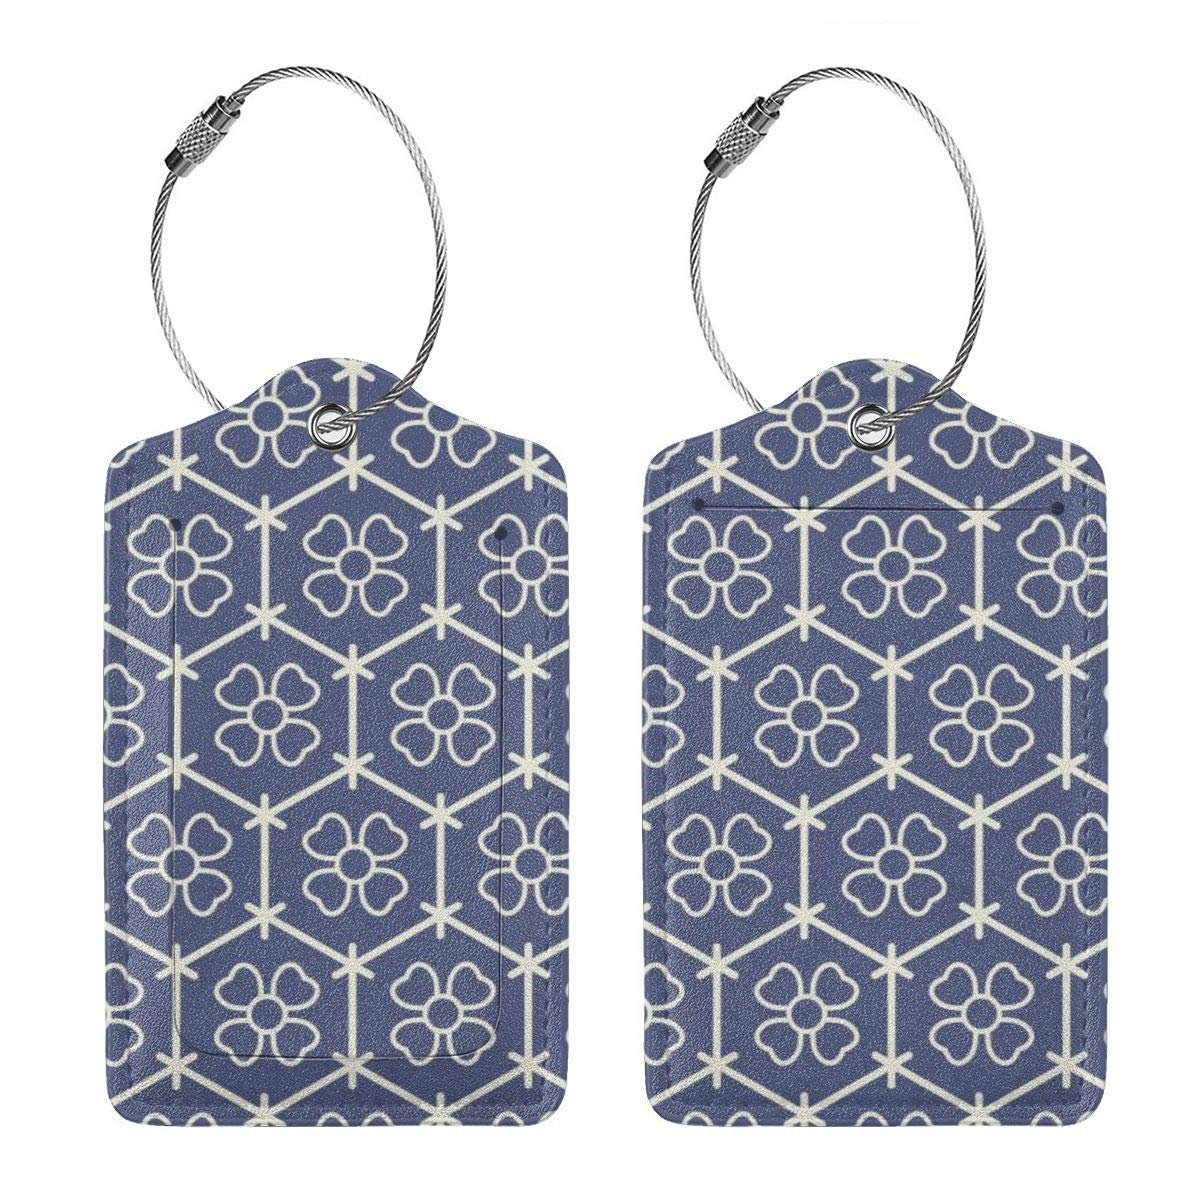 Japanese Patterns Beautiful Travel Luggage Tags With Full Privacy Cover Leather Case And Stainless Steel Loop